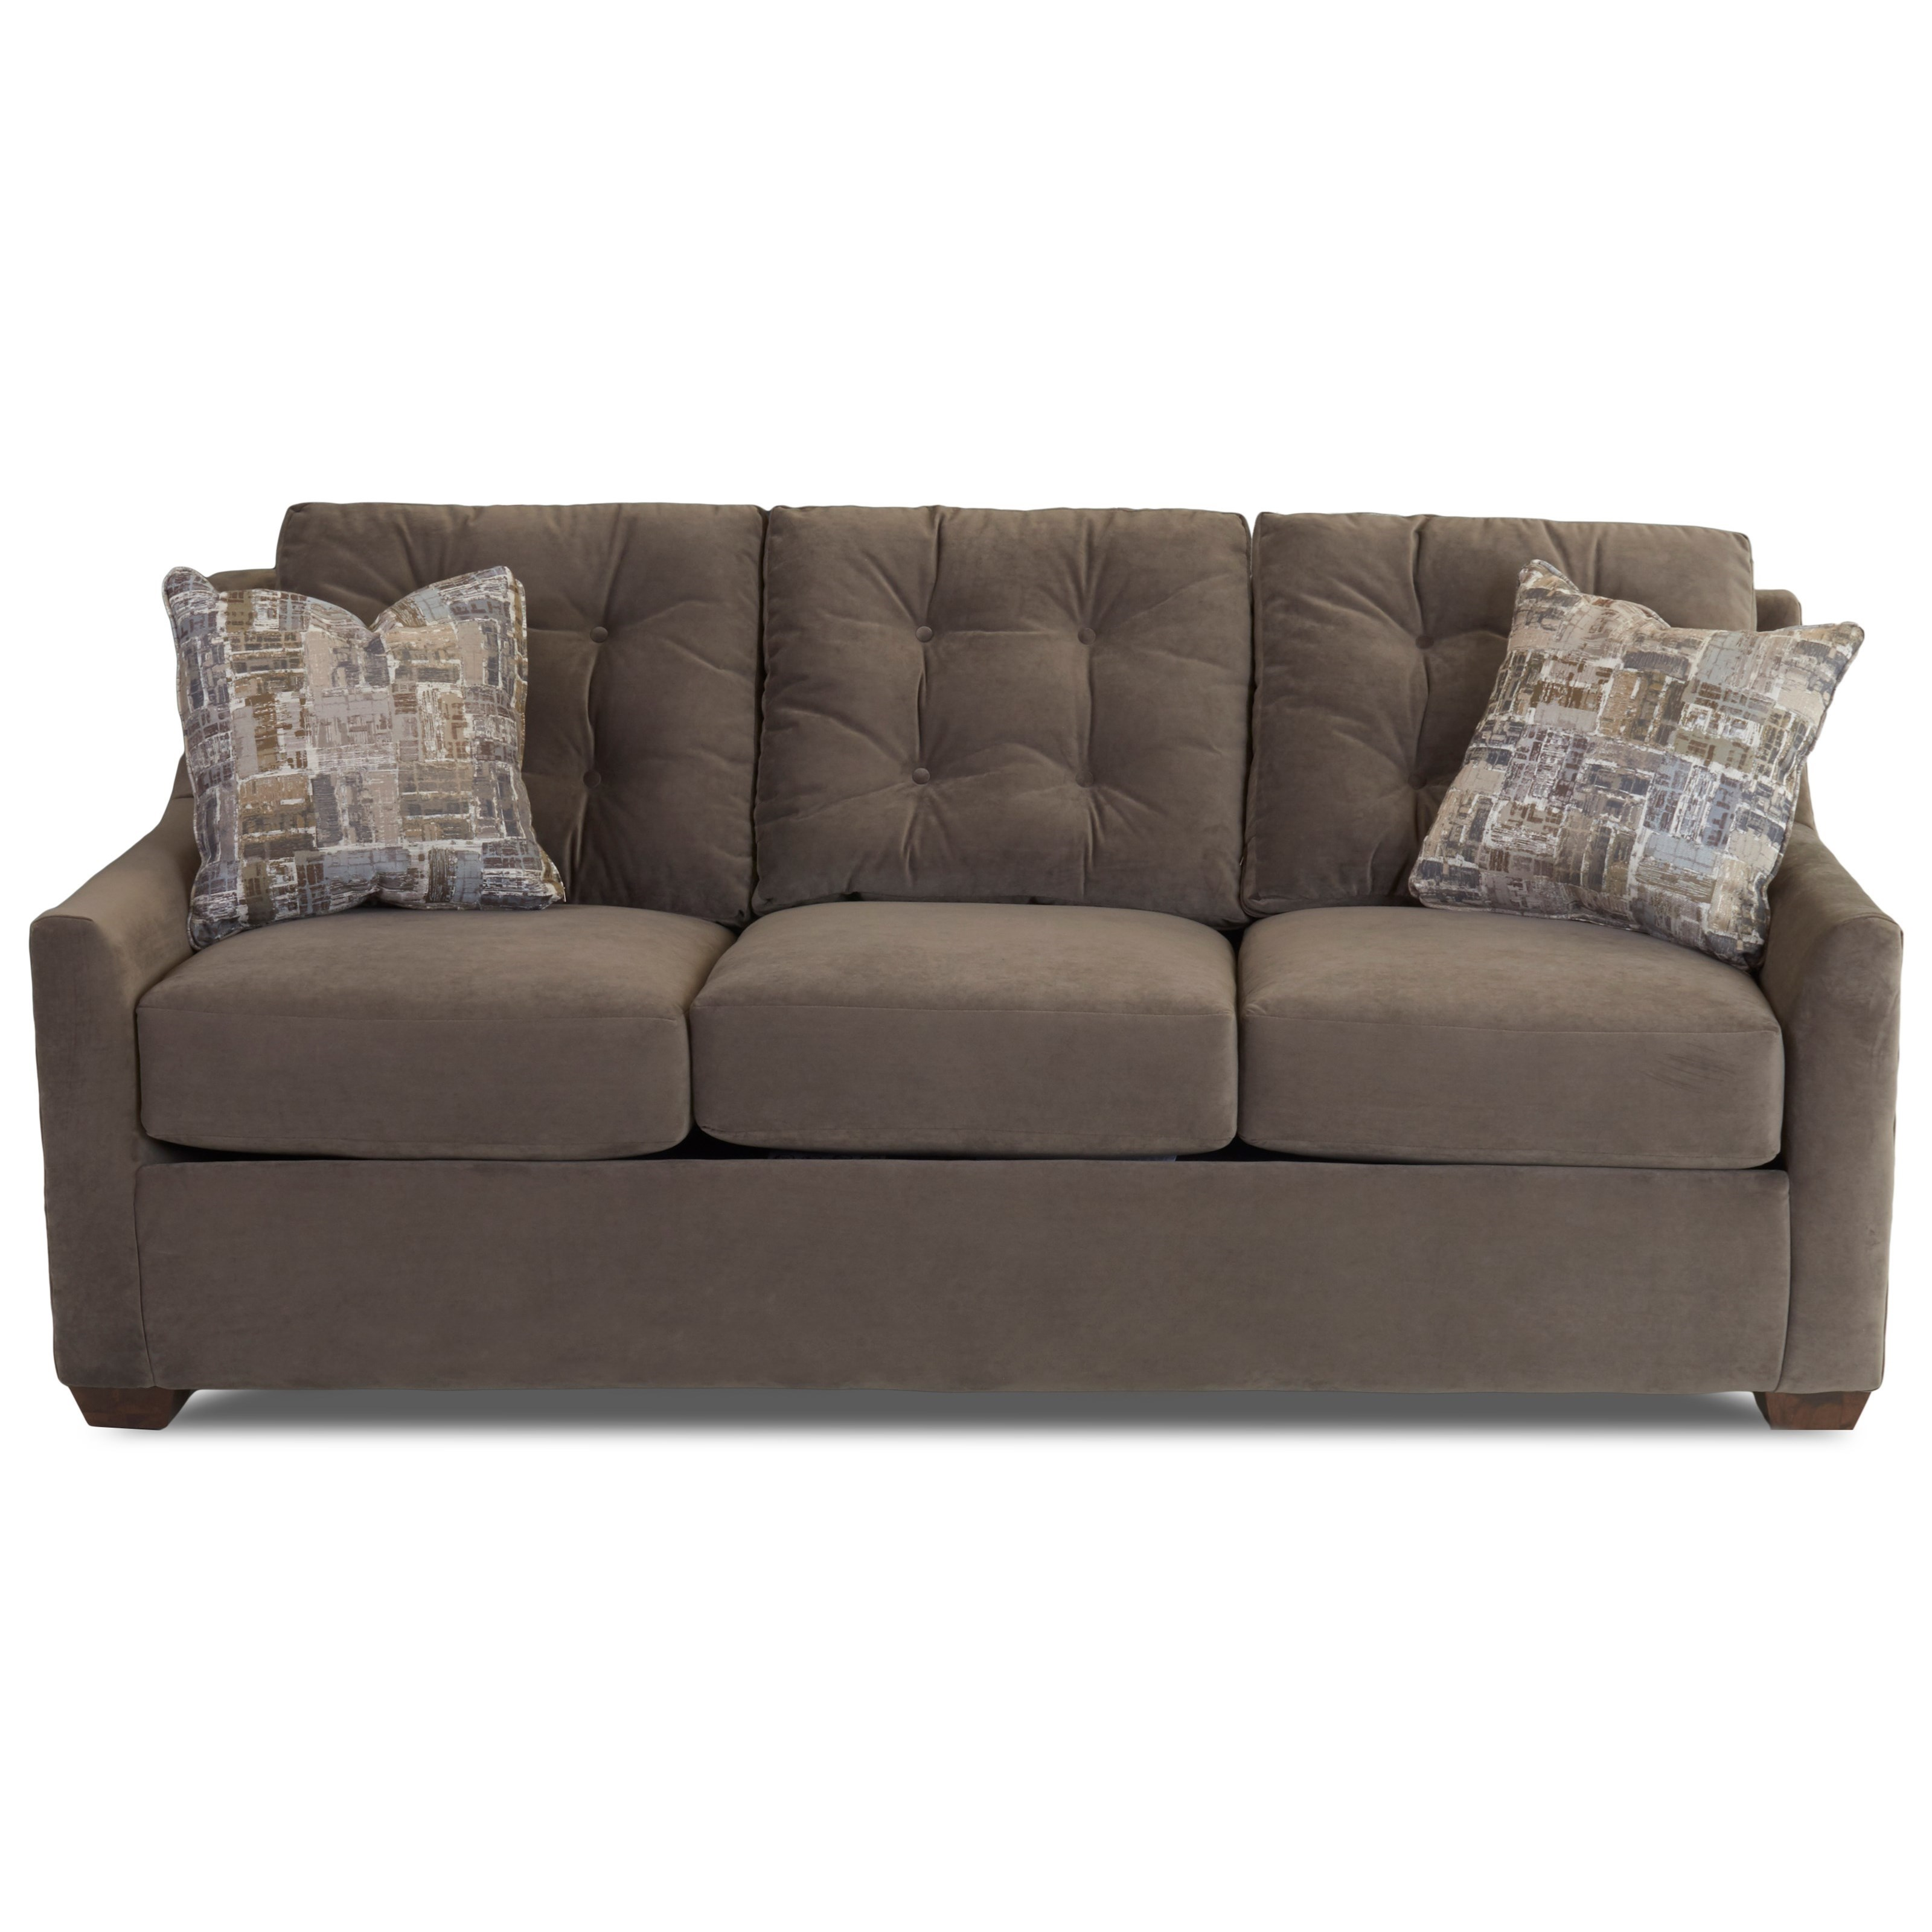 Grayton Queen Dreamquest Sleeper Sofa by Klaussner at Northeast Factory Direct